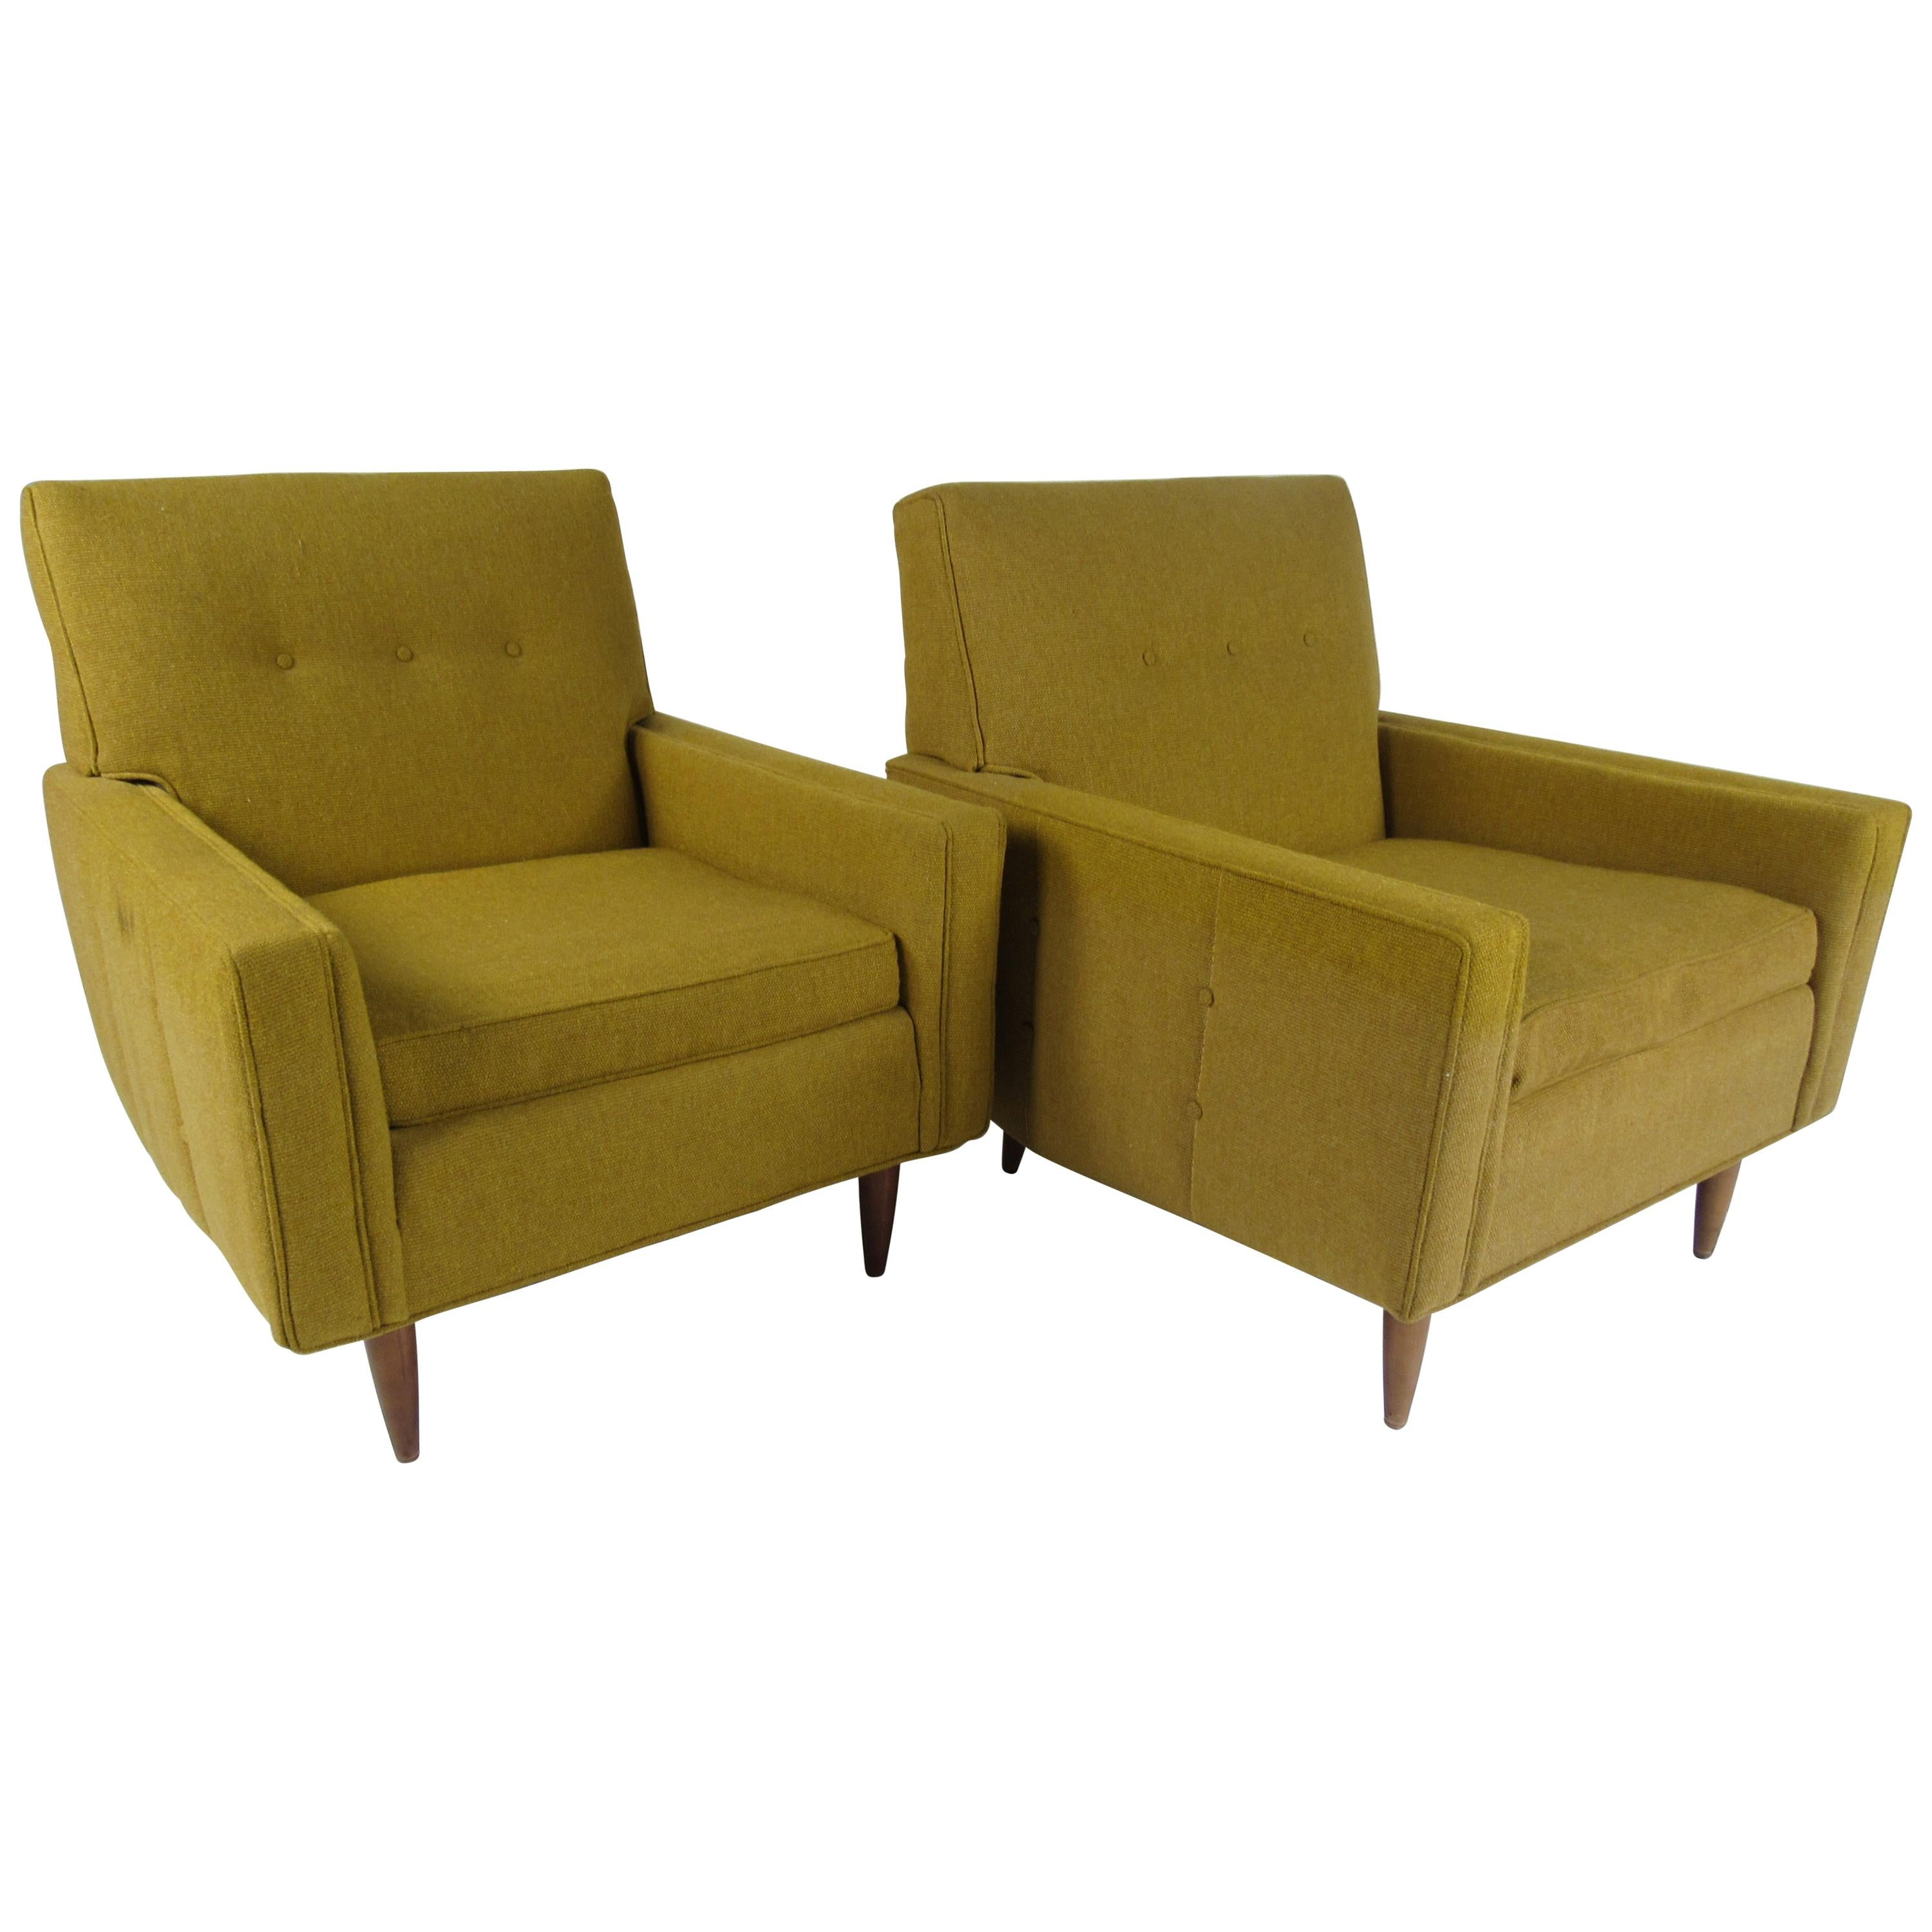 Pair of Midcentury Lounge Chairs by Rowe